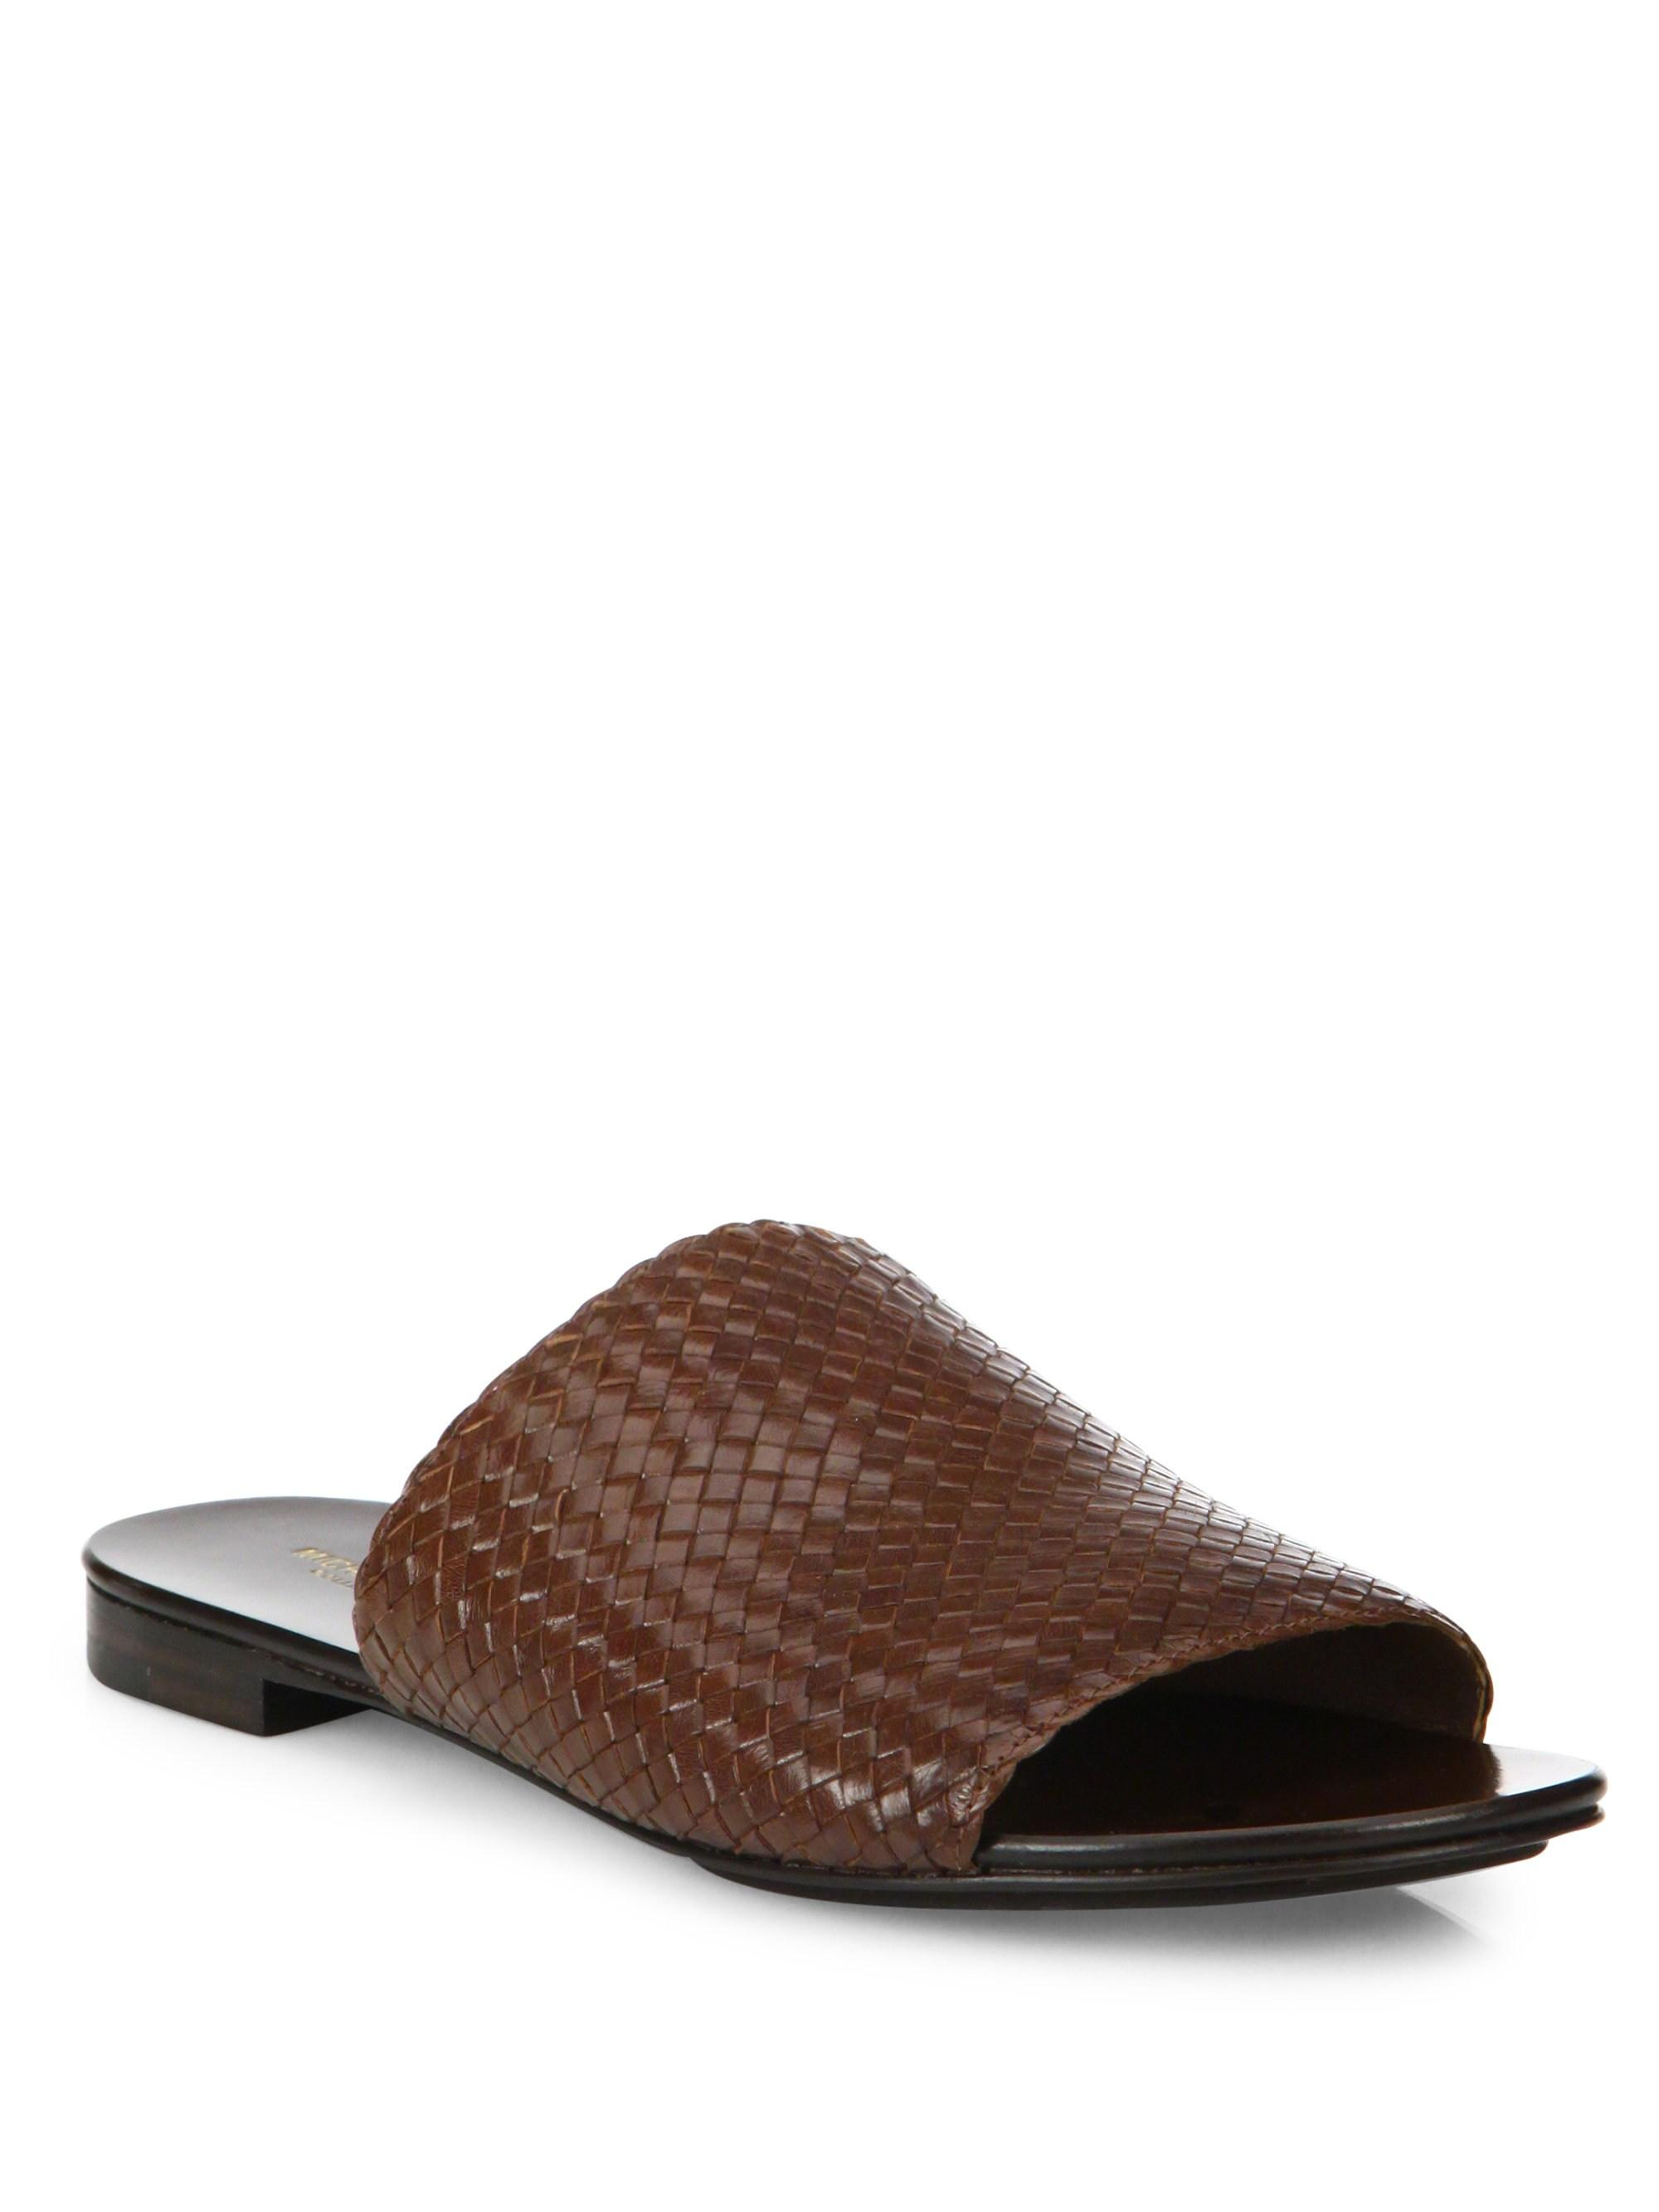 d97b4526dd09 Michael Kors. Women s Brown Byrne Woven Leather Slides.  395  158 From Saks  Fifth Avenue